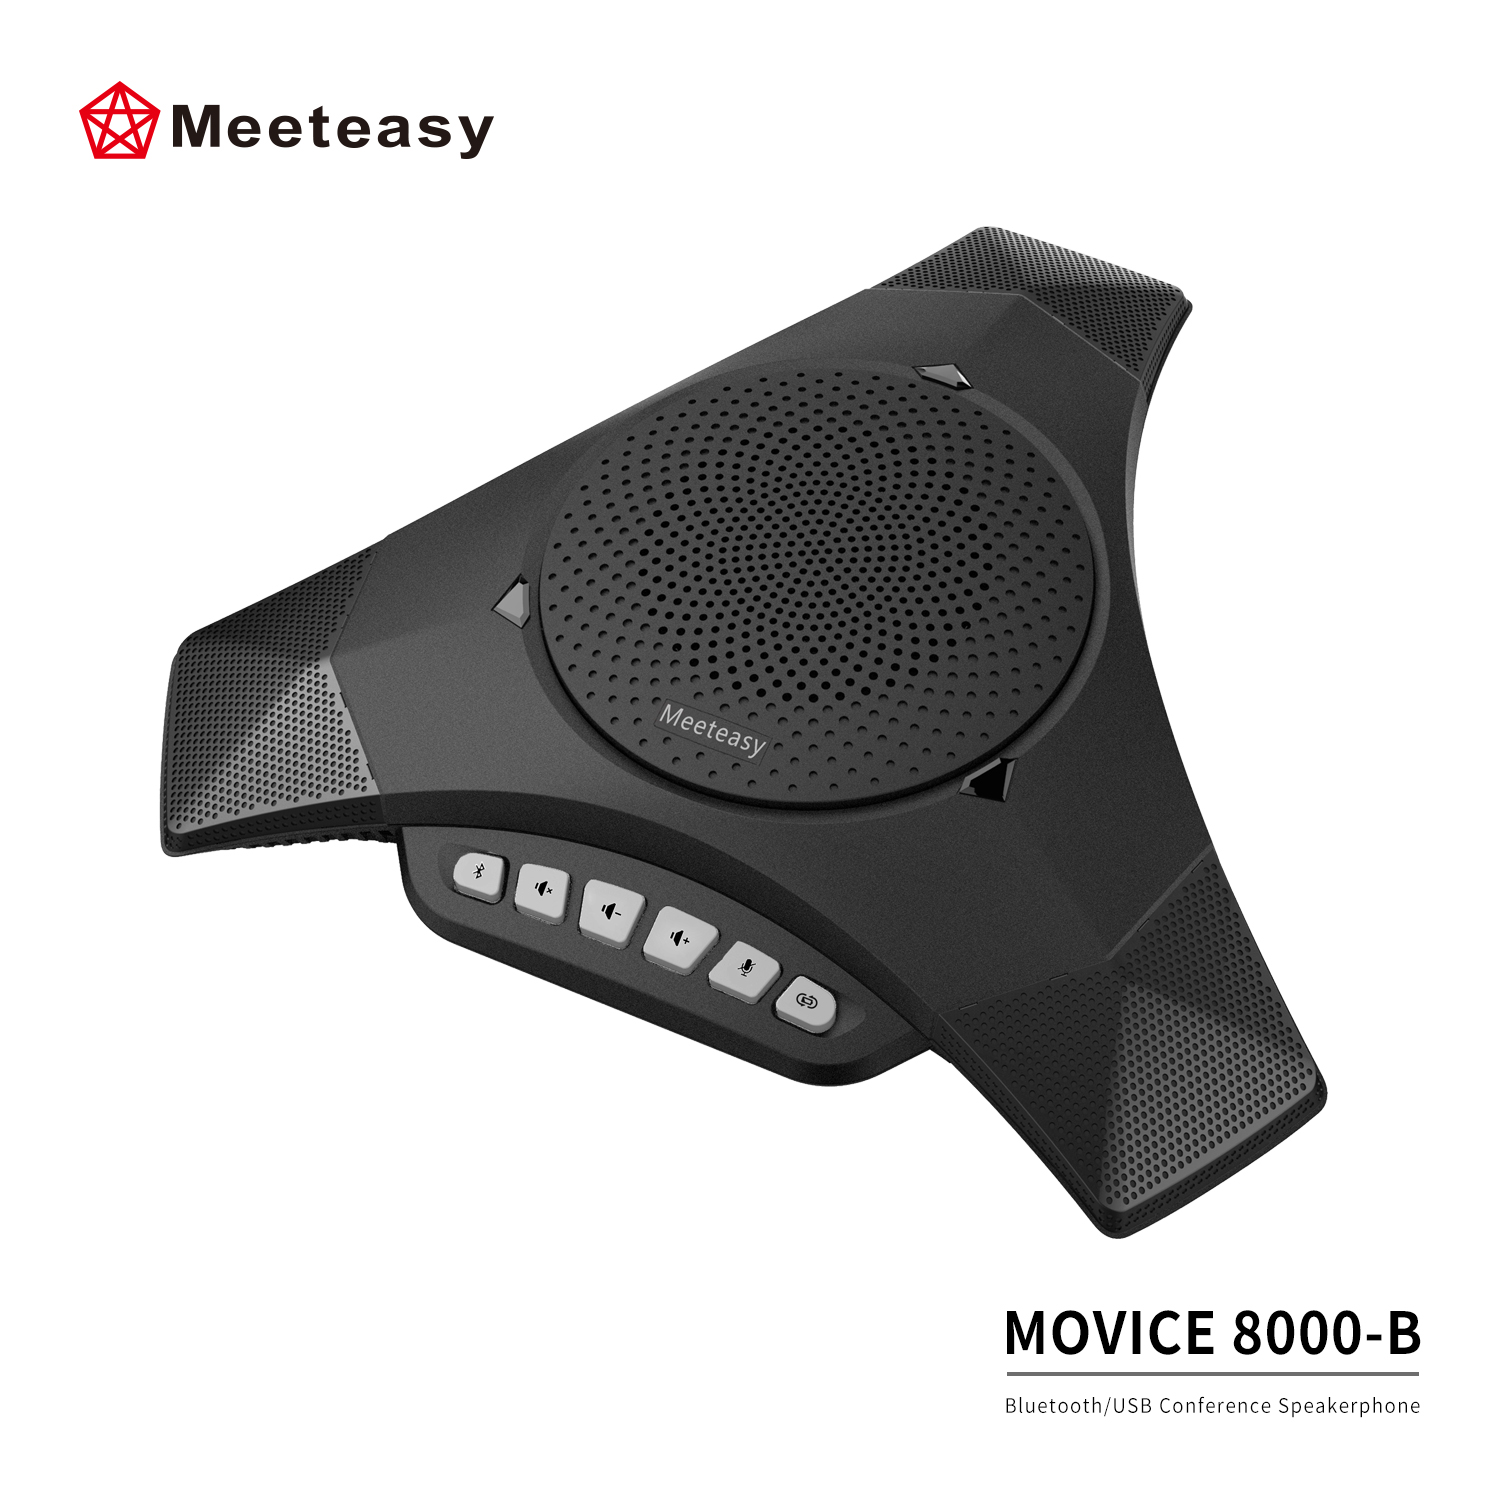 Meeteasy MVOICE 8000-B Bluetooth conference speakerphone for AV conferencing